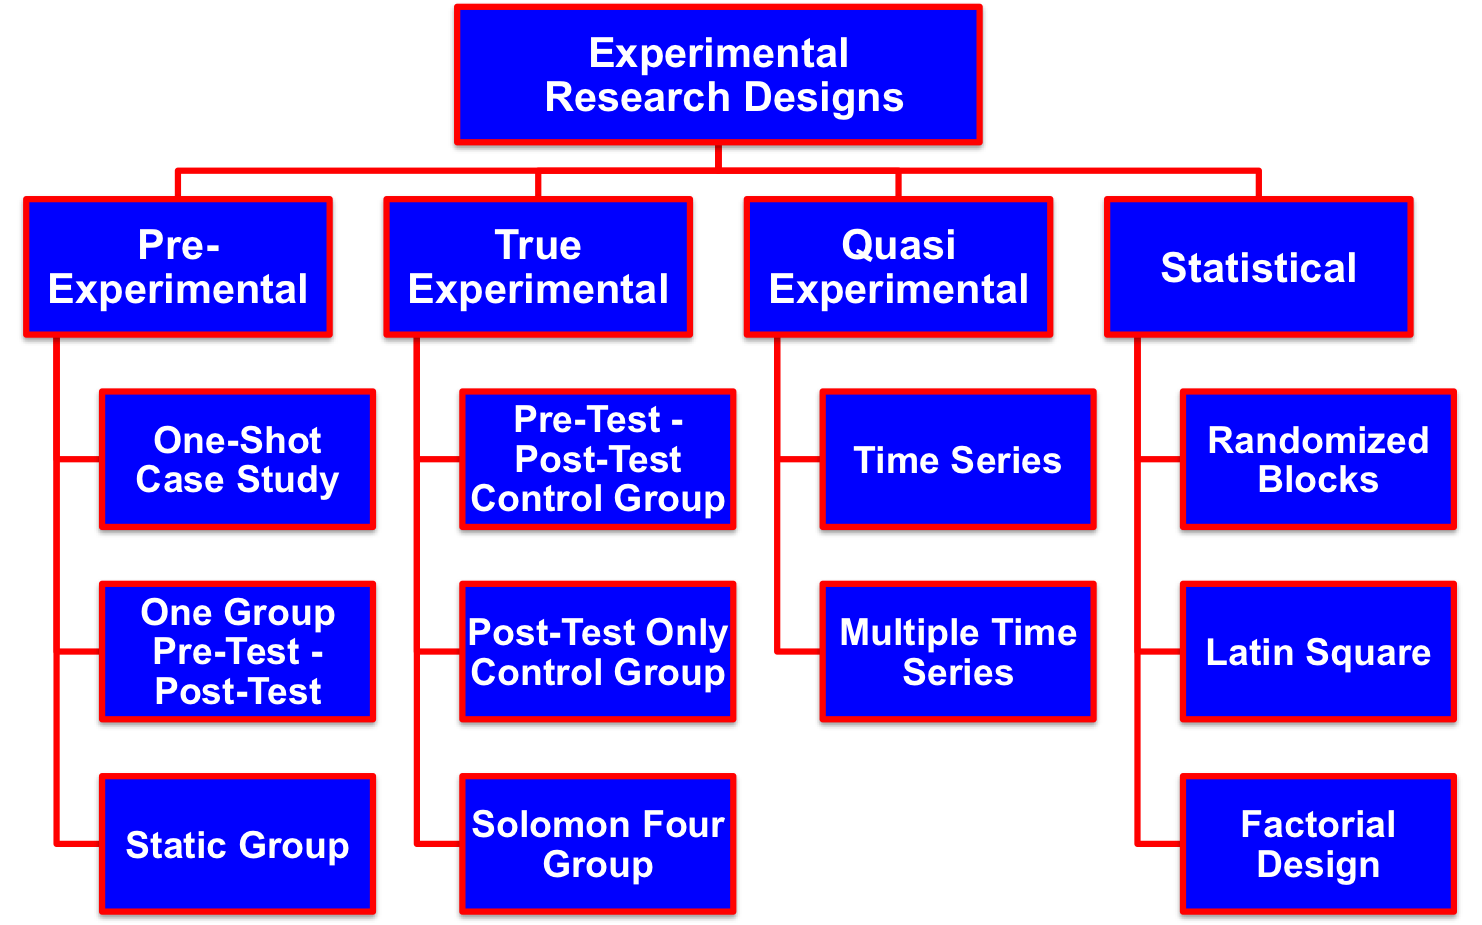 Causal Or Experimental Research Designs ExperimentalDesignClassification CausalMR